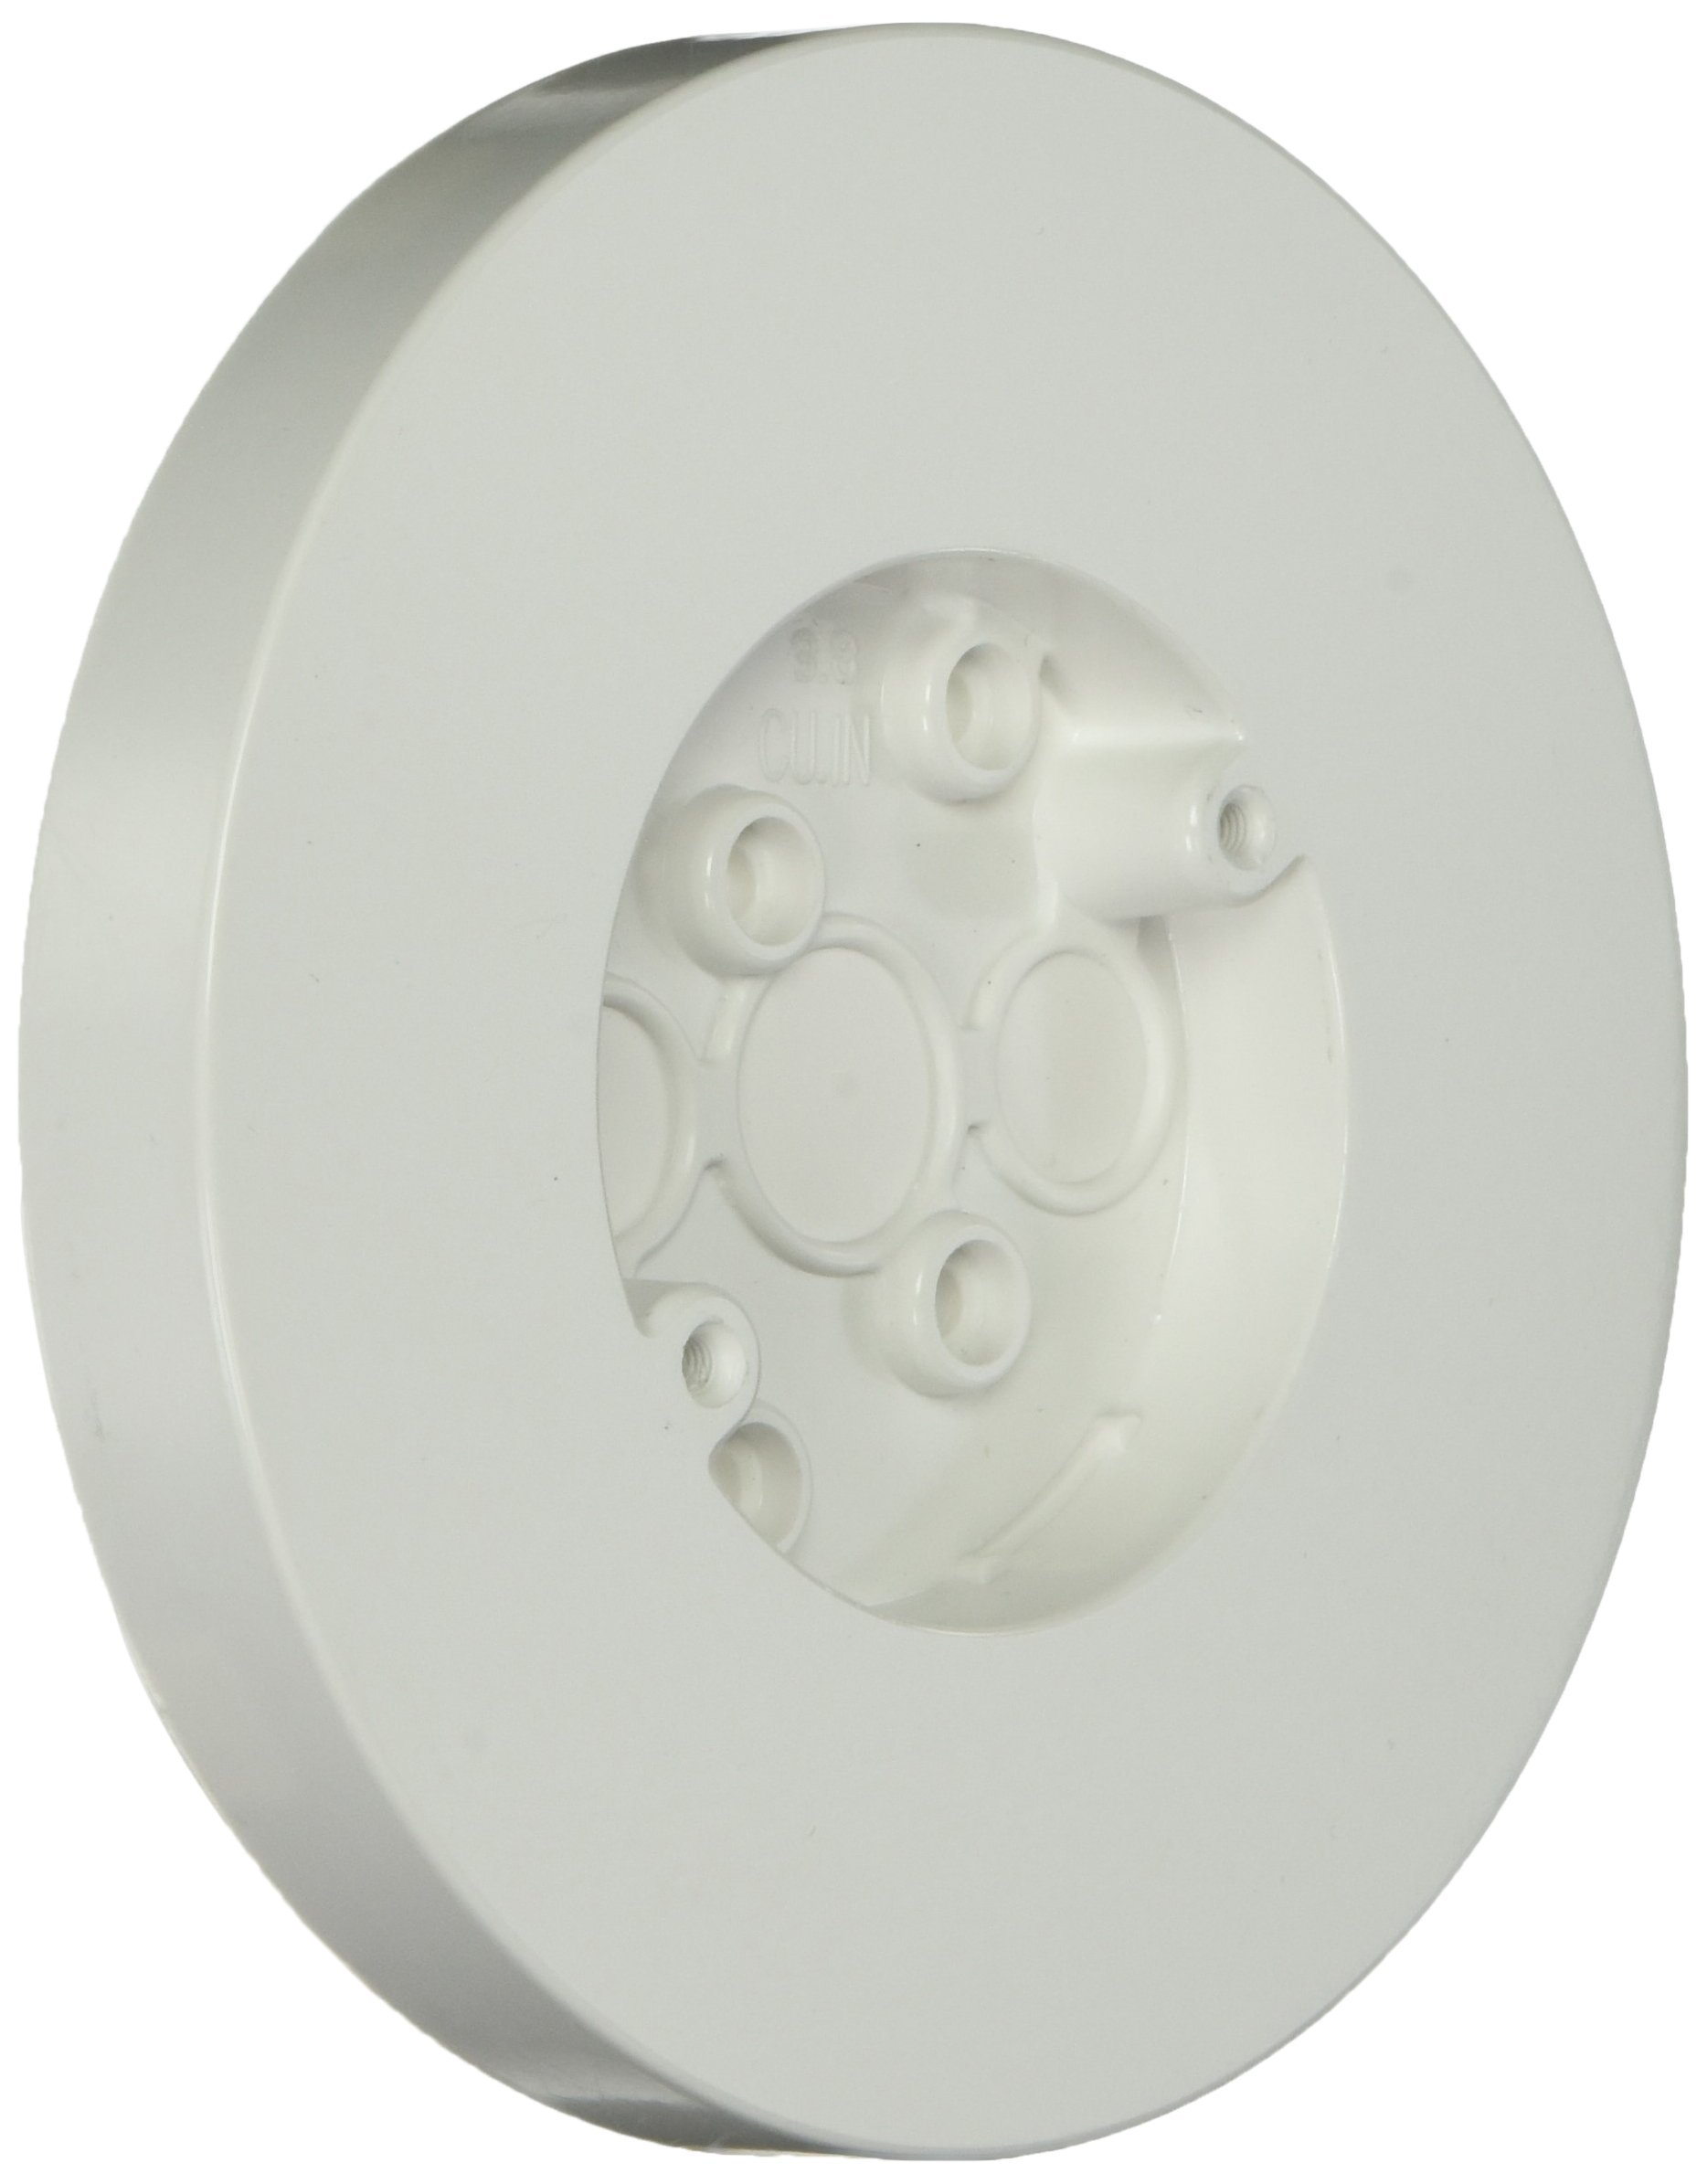 Thomas & Betts 5080-WH 3.8 cu. in. Round 2 Gang Surface Mount Box, White